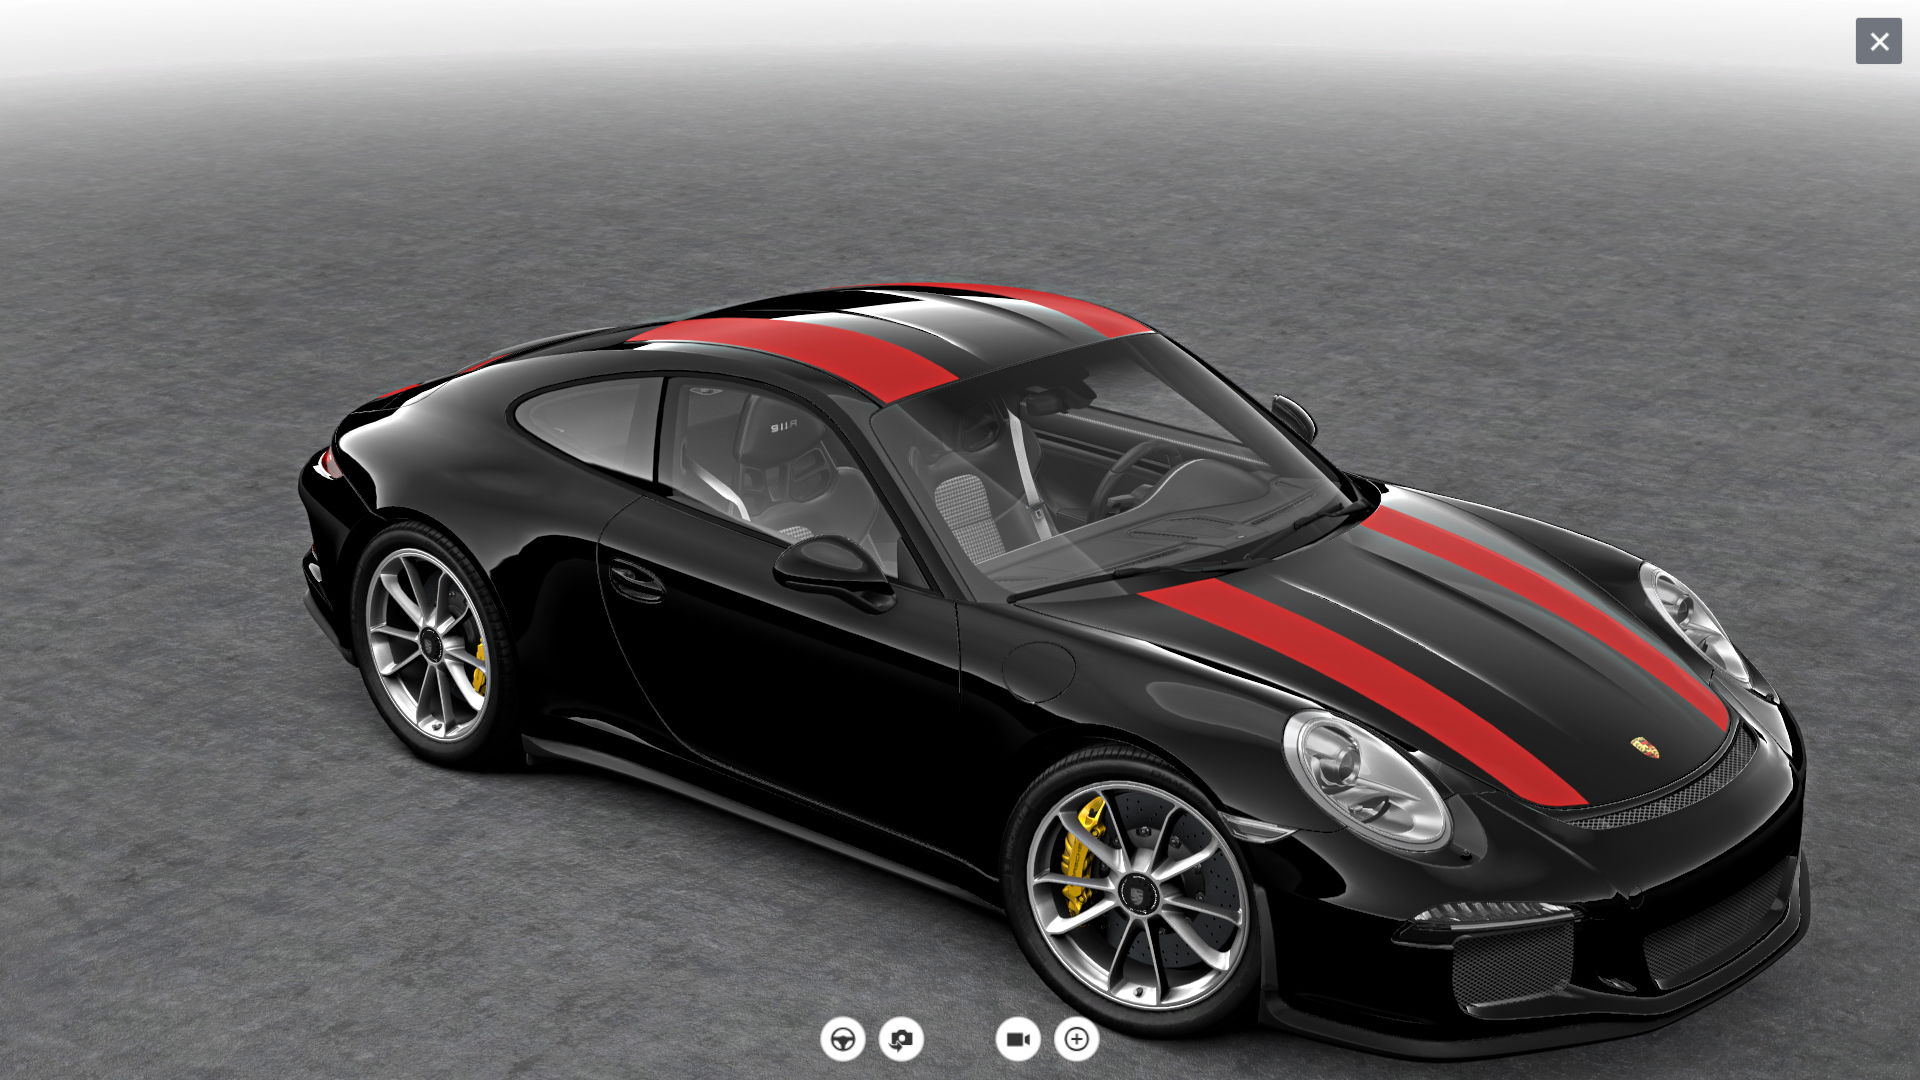 911r riding on 4x4 truck tires rennlist porsche discussion forums. Black Bedroom Furniture Sets. Home Design Ideas